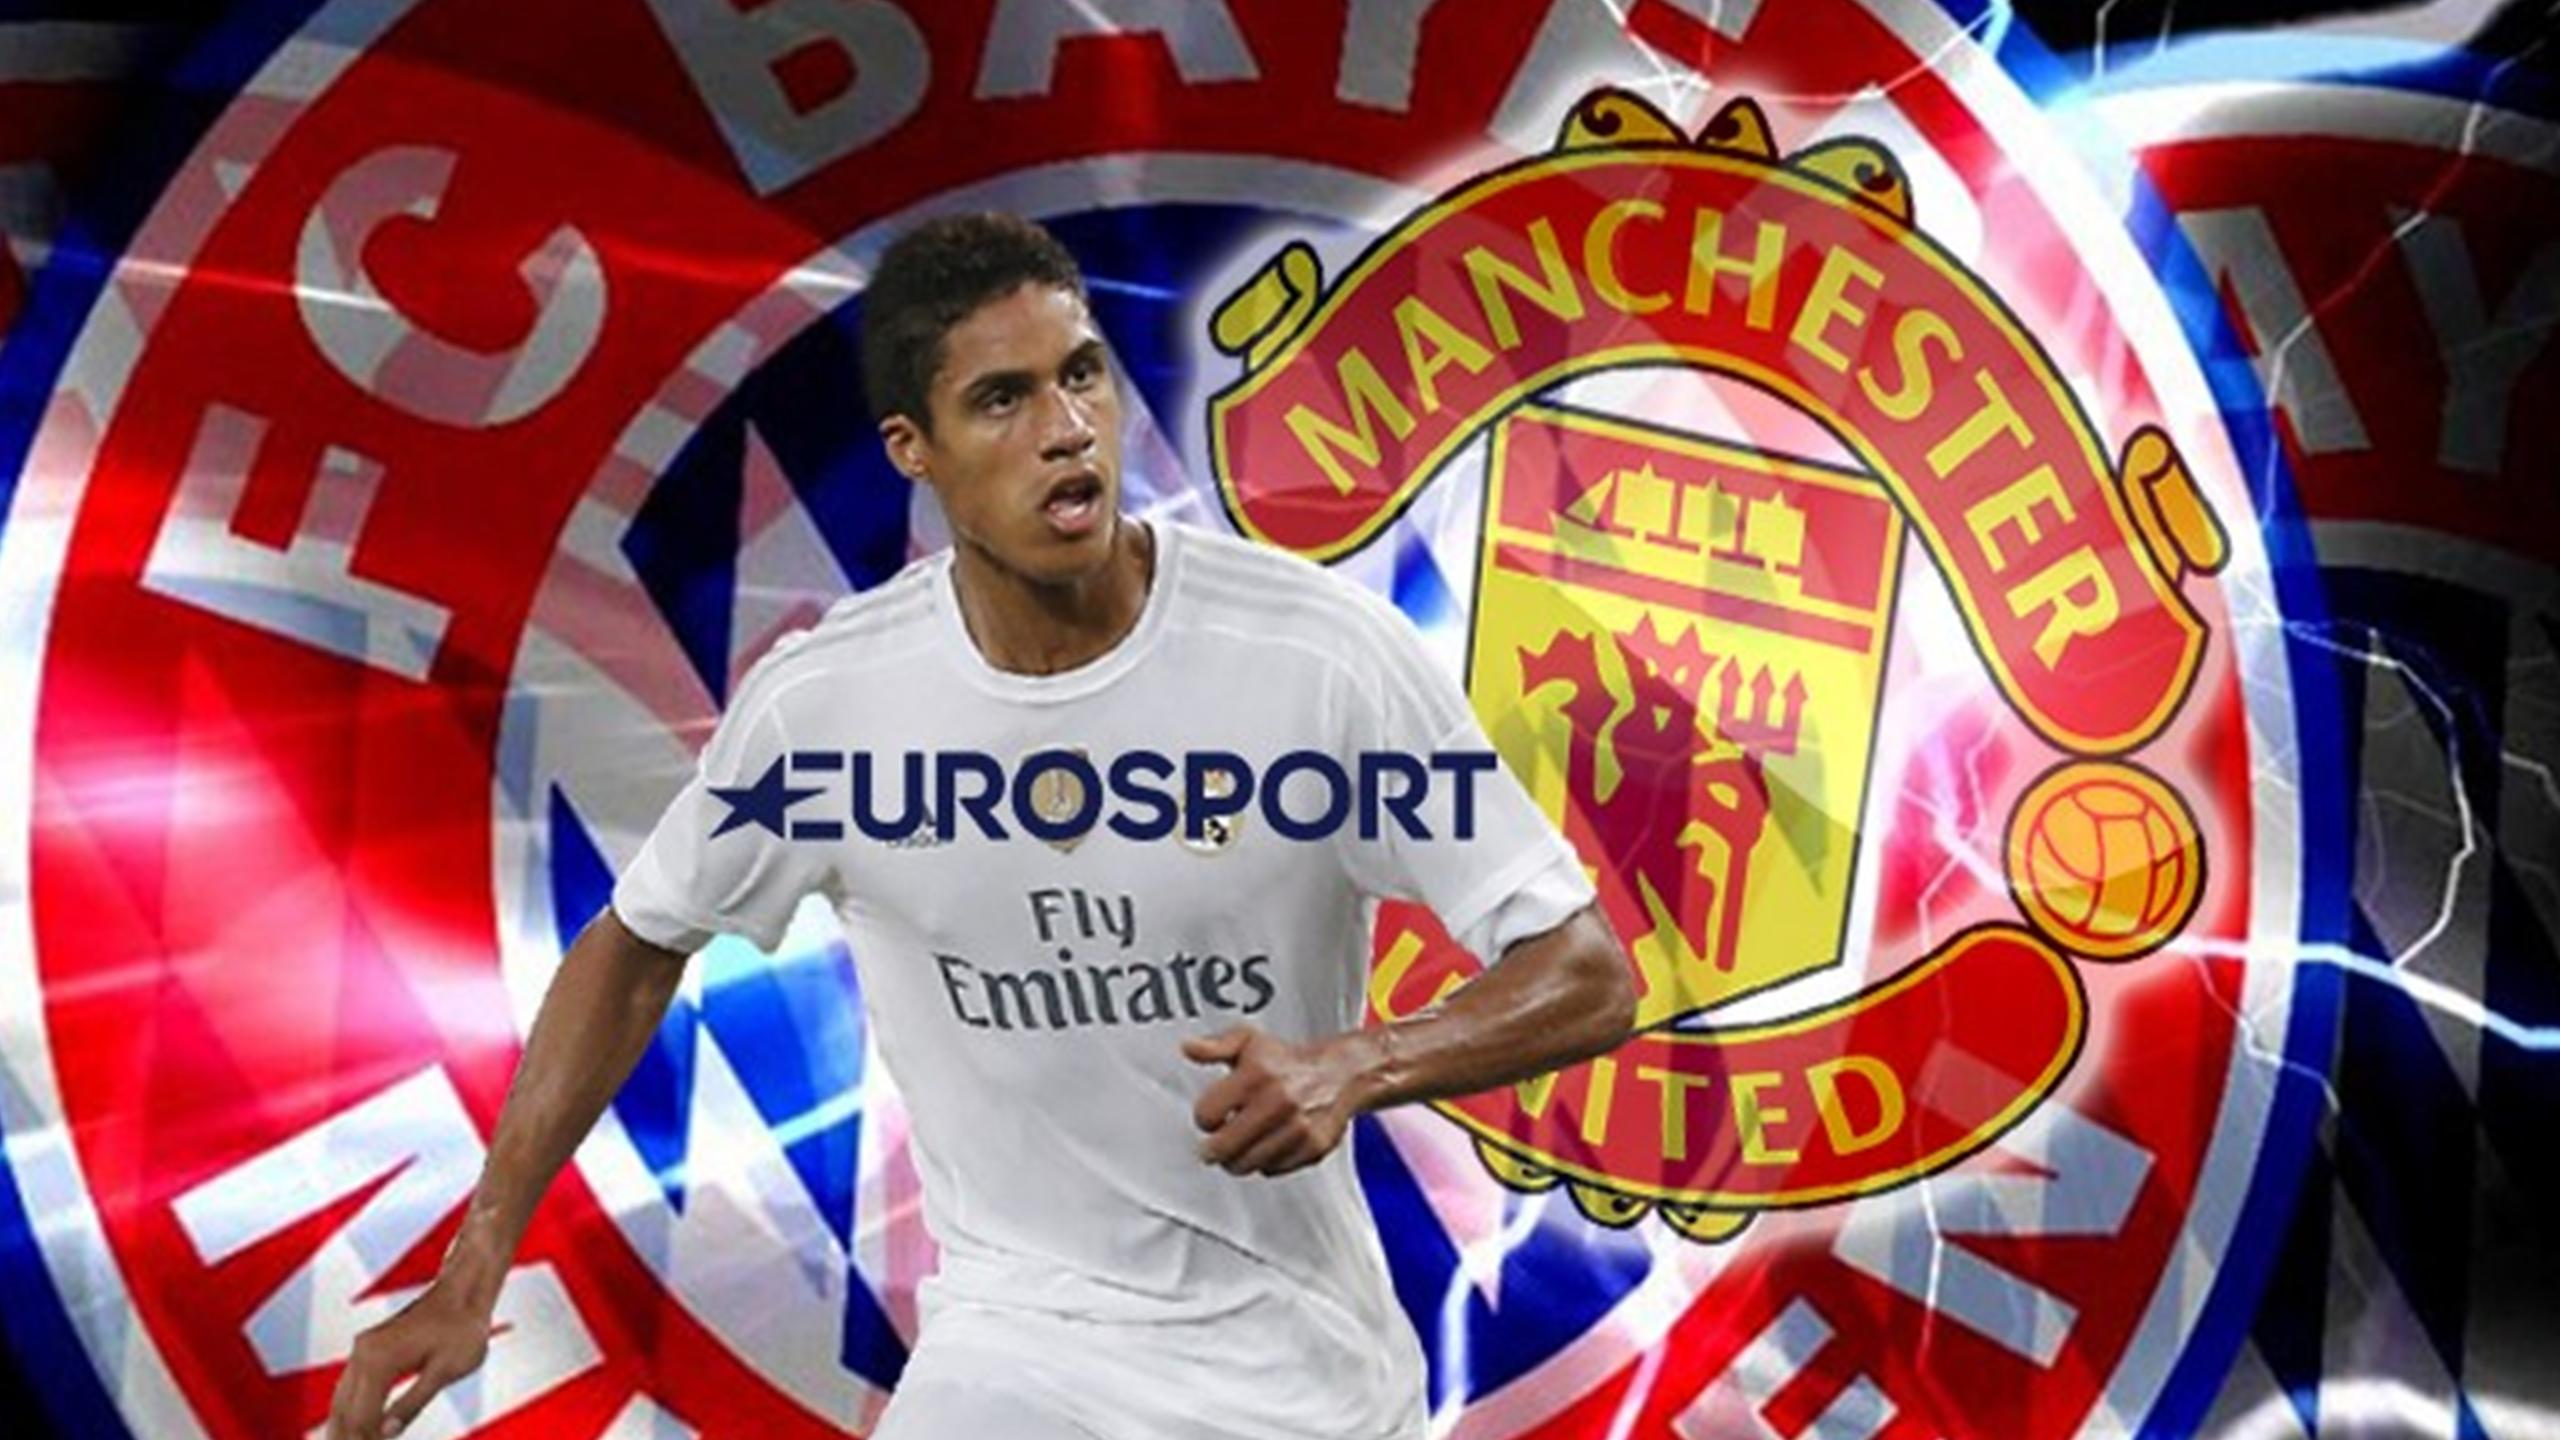 United & Bayern spark bidding war for unhappy Varane - Euro Papers